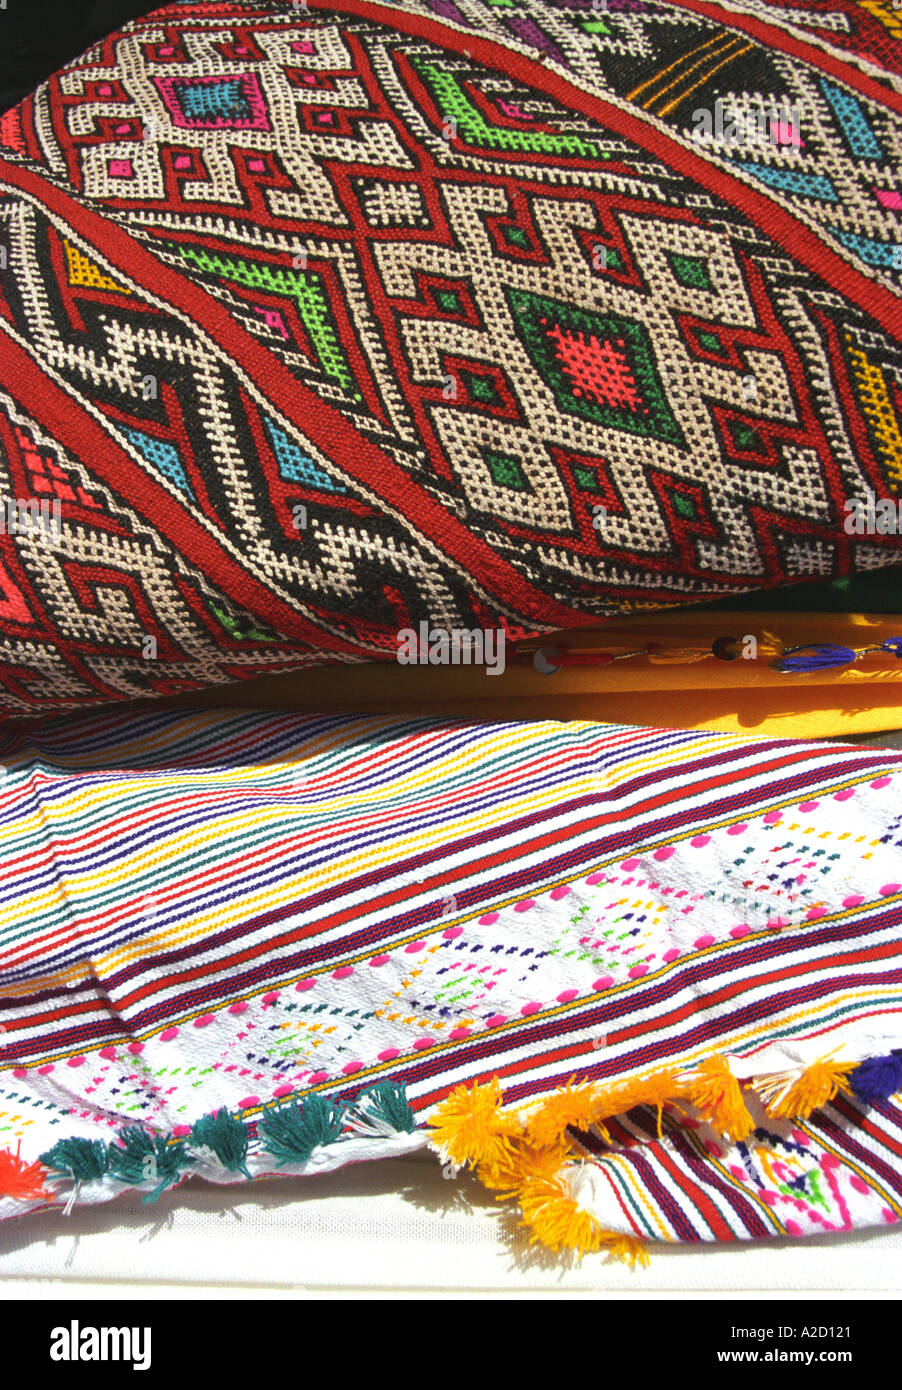 Traditional Handicrafts on Display in Moroccan Markets (Souqs) - Stock Image